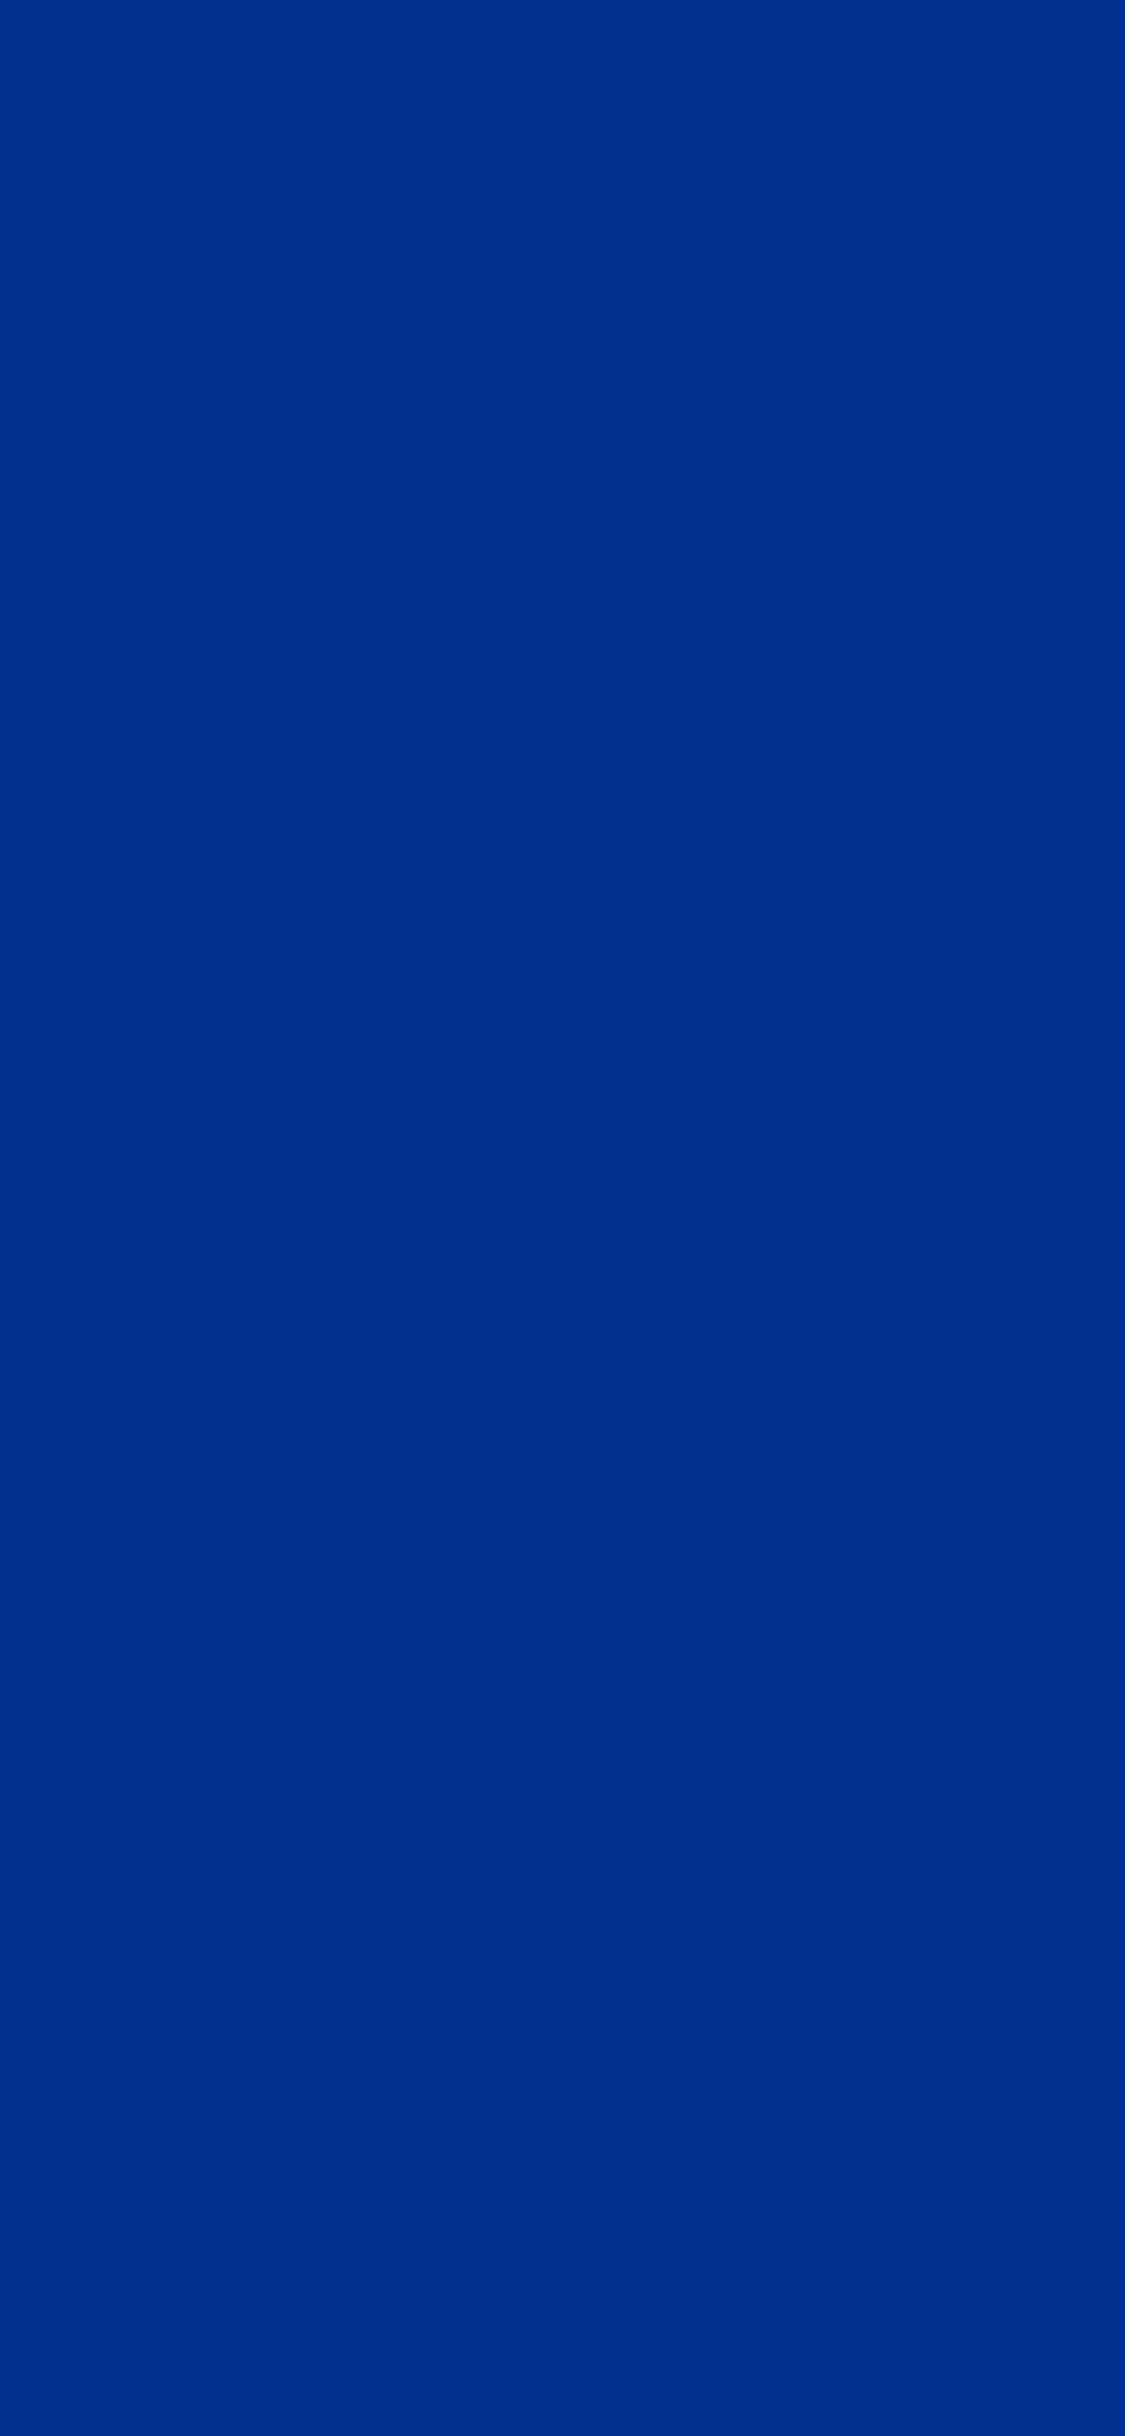 1125x2436 Air Force Dark Blue Solid Color Background